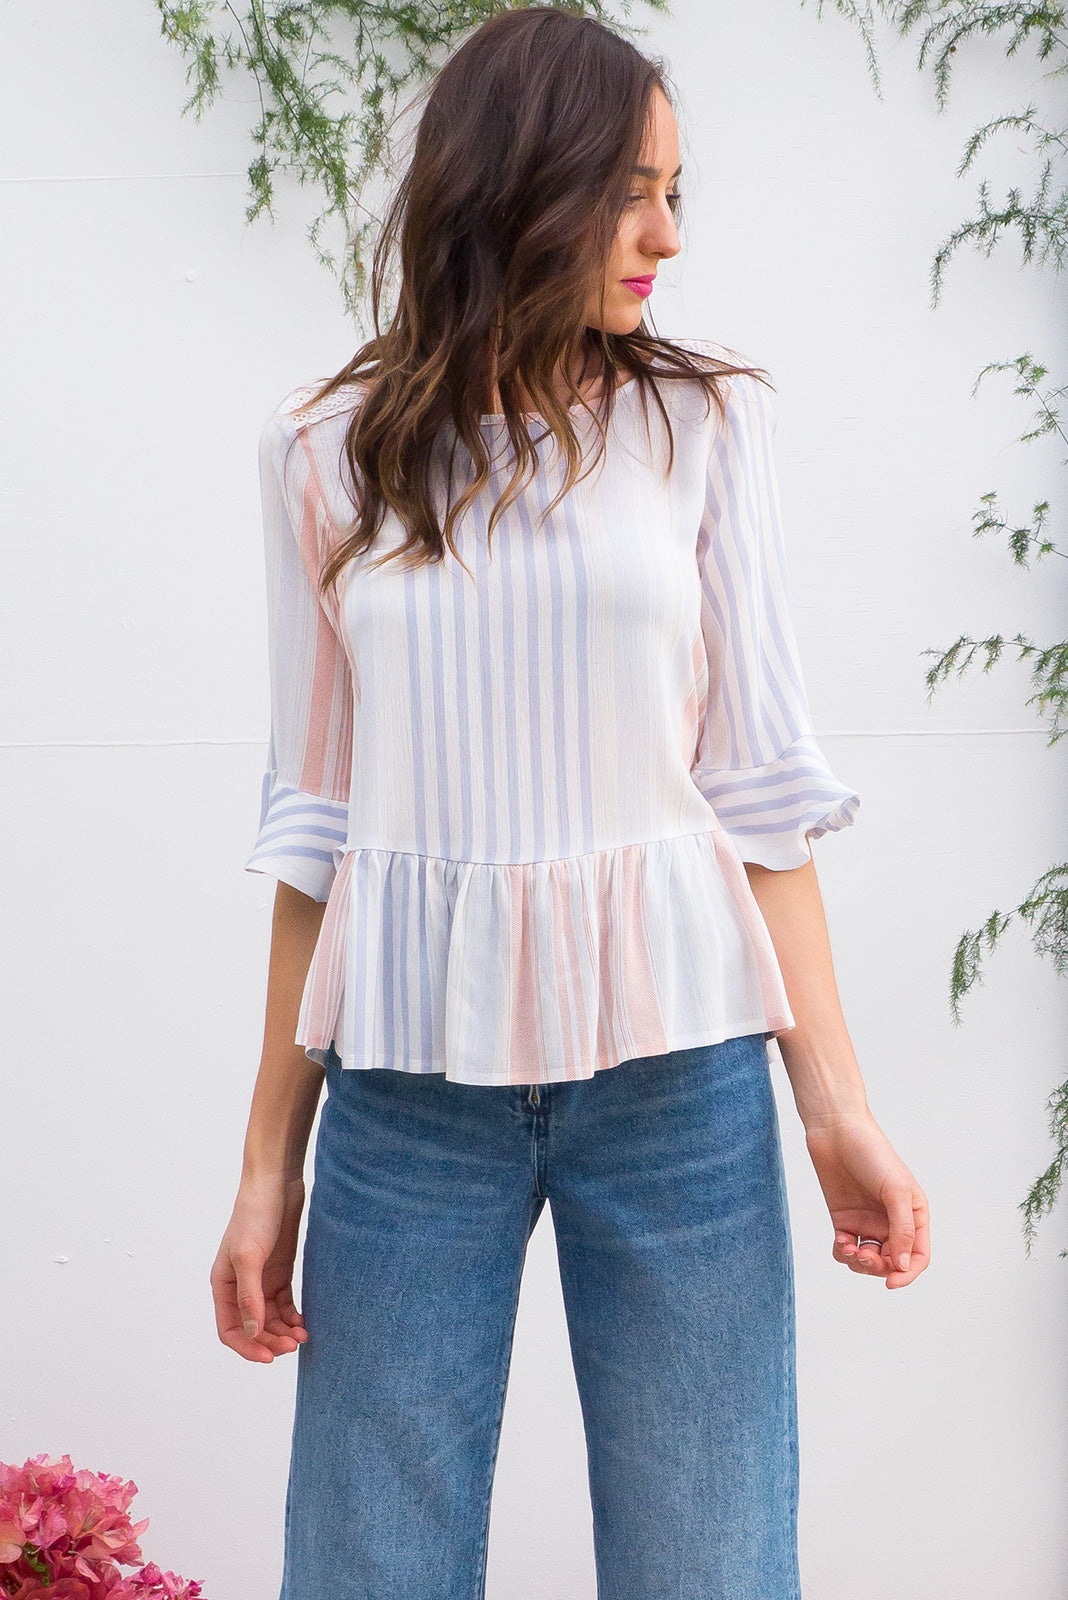 Sienna Arctic Stripe Top frill top has a soft drop waist and a bias cut frill sleeve cuff it comes in a crinkle textured rayon with a soft pastel stripe print